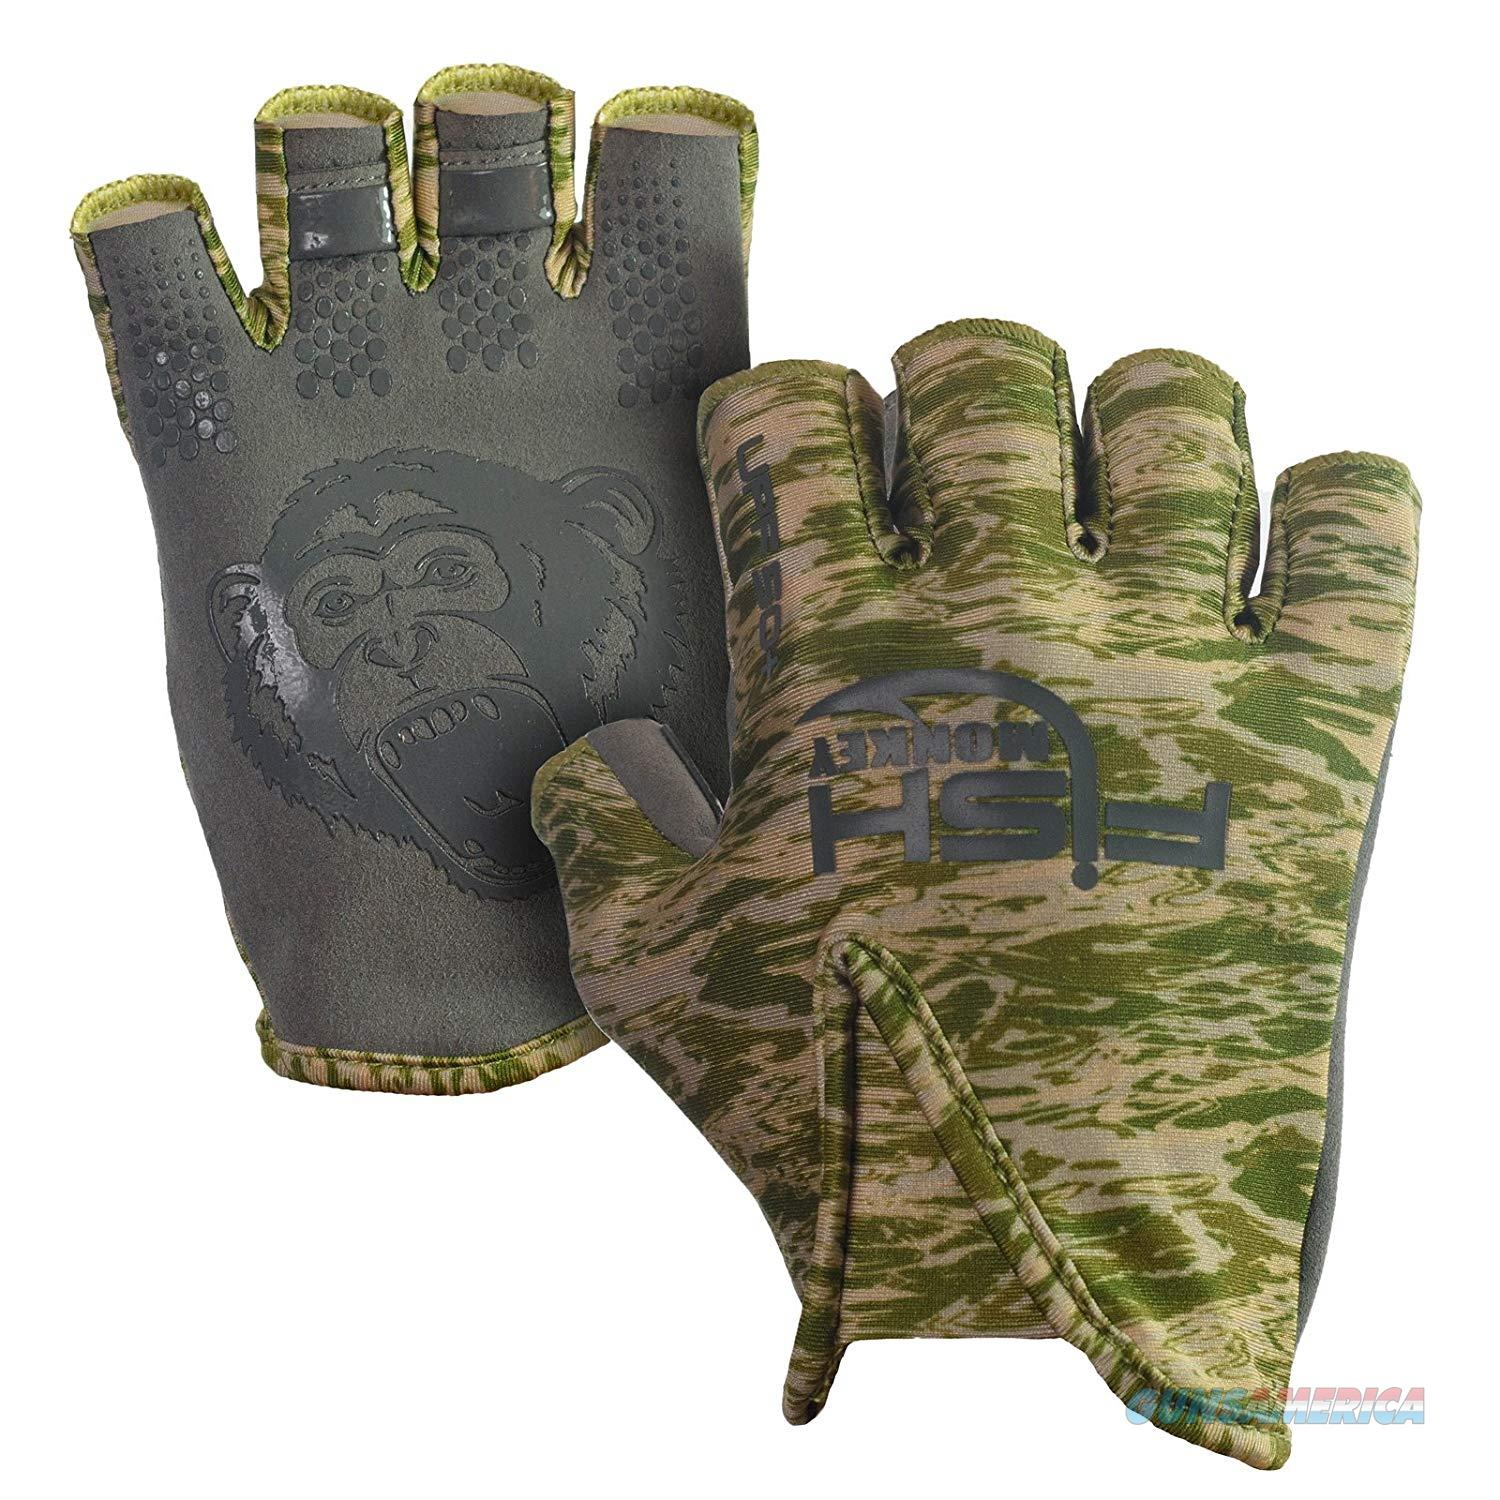 Fish Monkey Stubby Guide Glove Green LG  Non-Guns > Hunting Clothing and Equipment > Clothing > Gloves